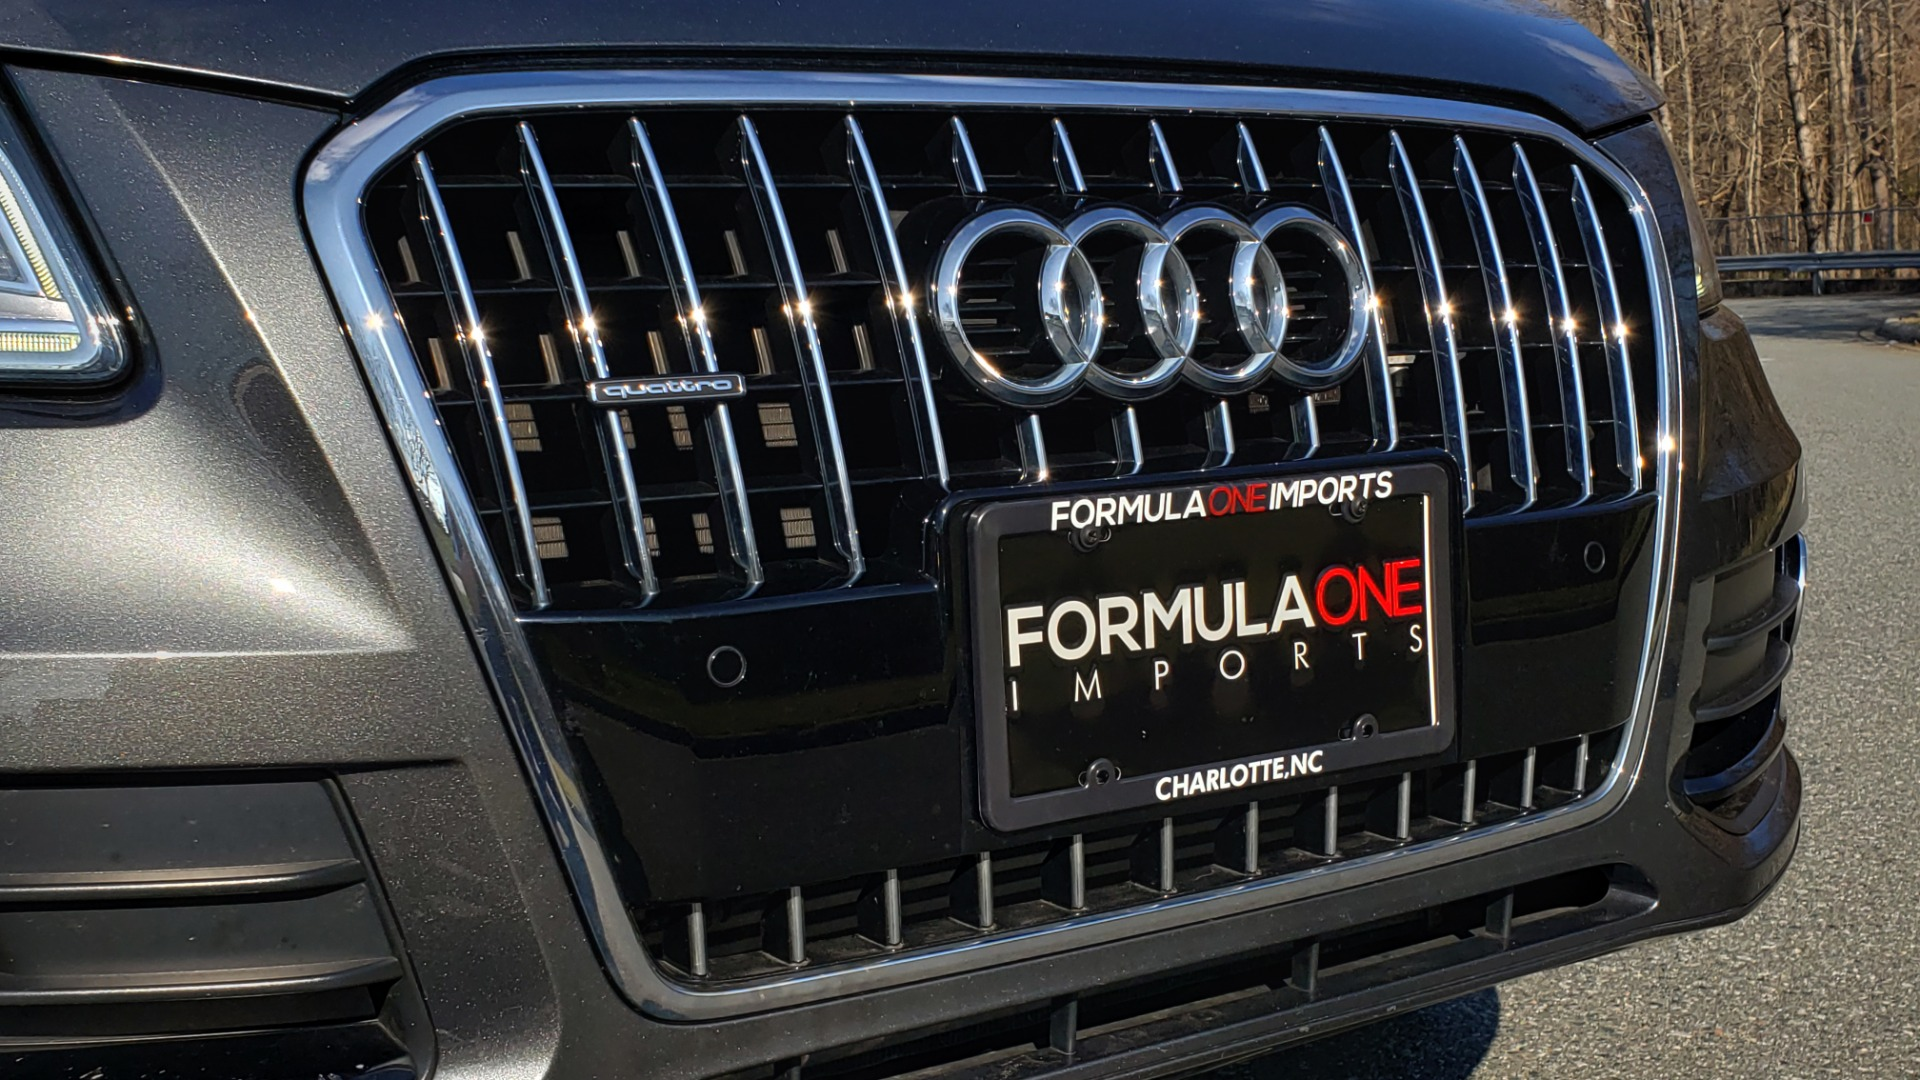 Used 2017 Audi Q5 PREMIUM PLUS / TECH / NAV / PANO / REARVIEW / B&O SND for sale Sold at Formula Imports in Charlotte NC 28227 15